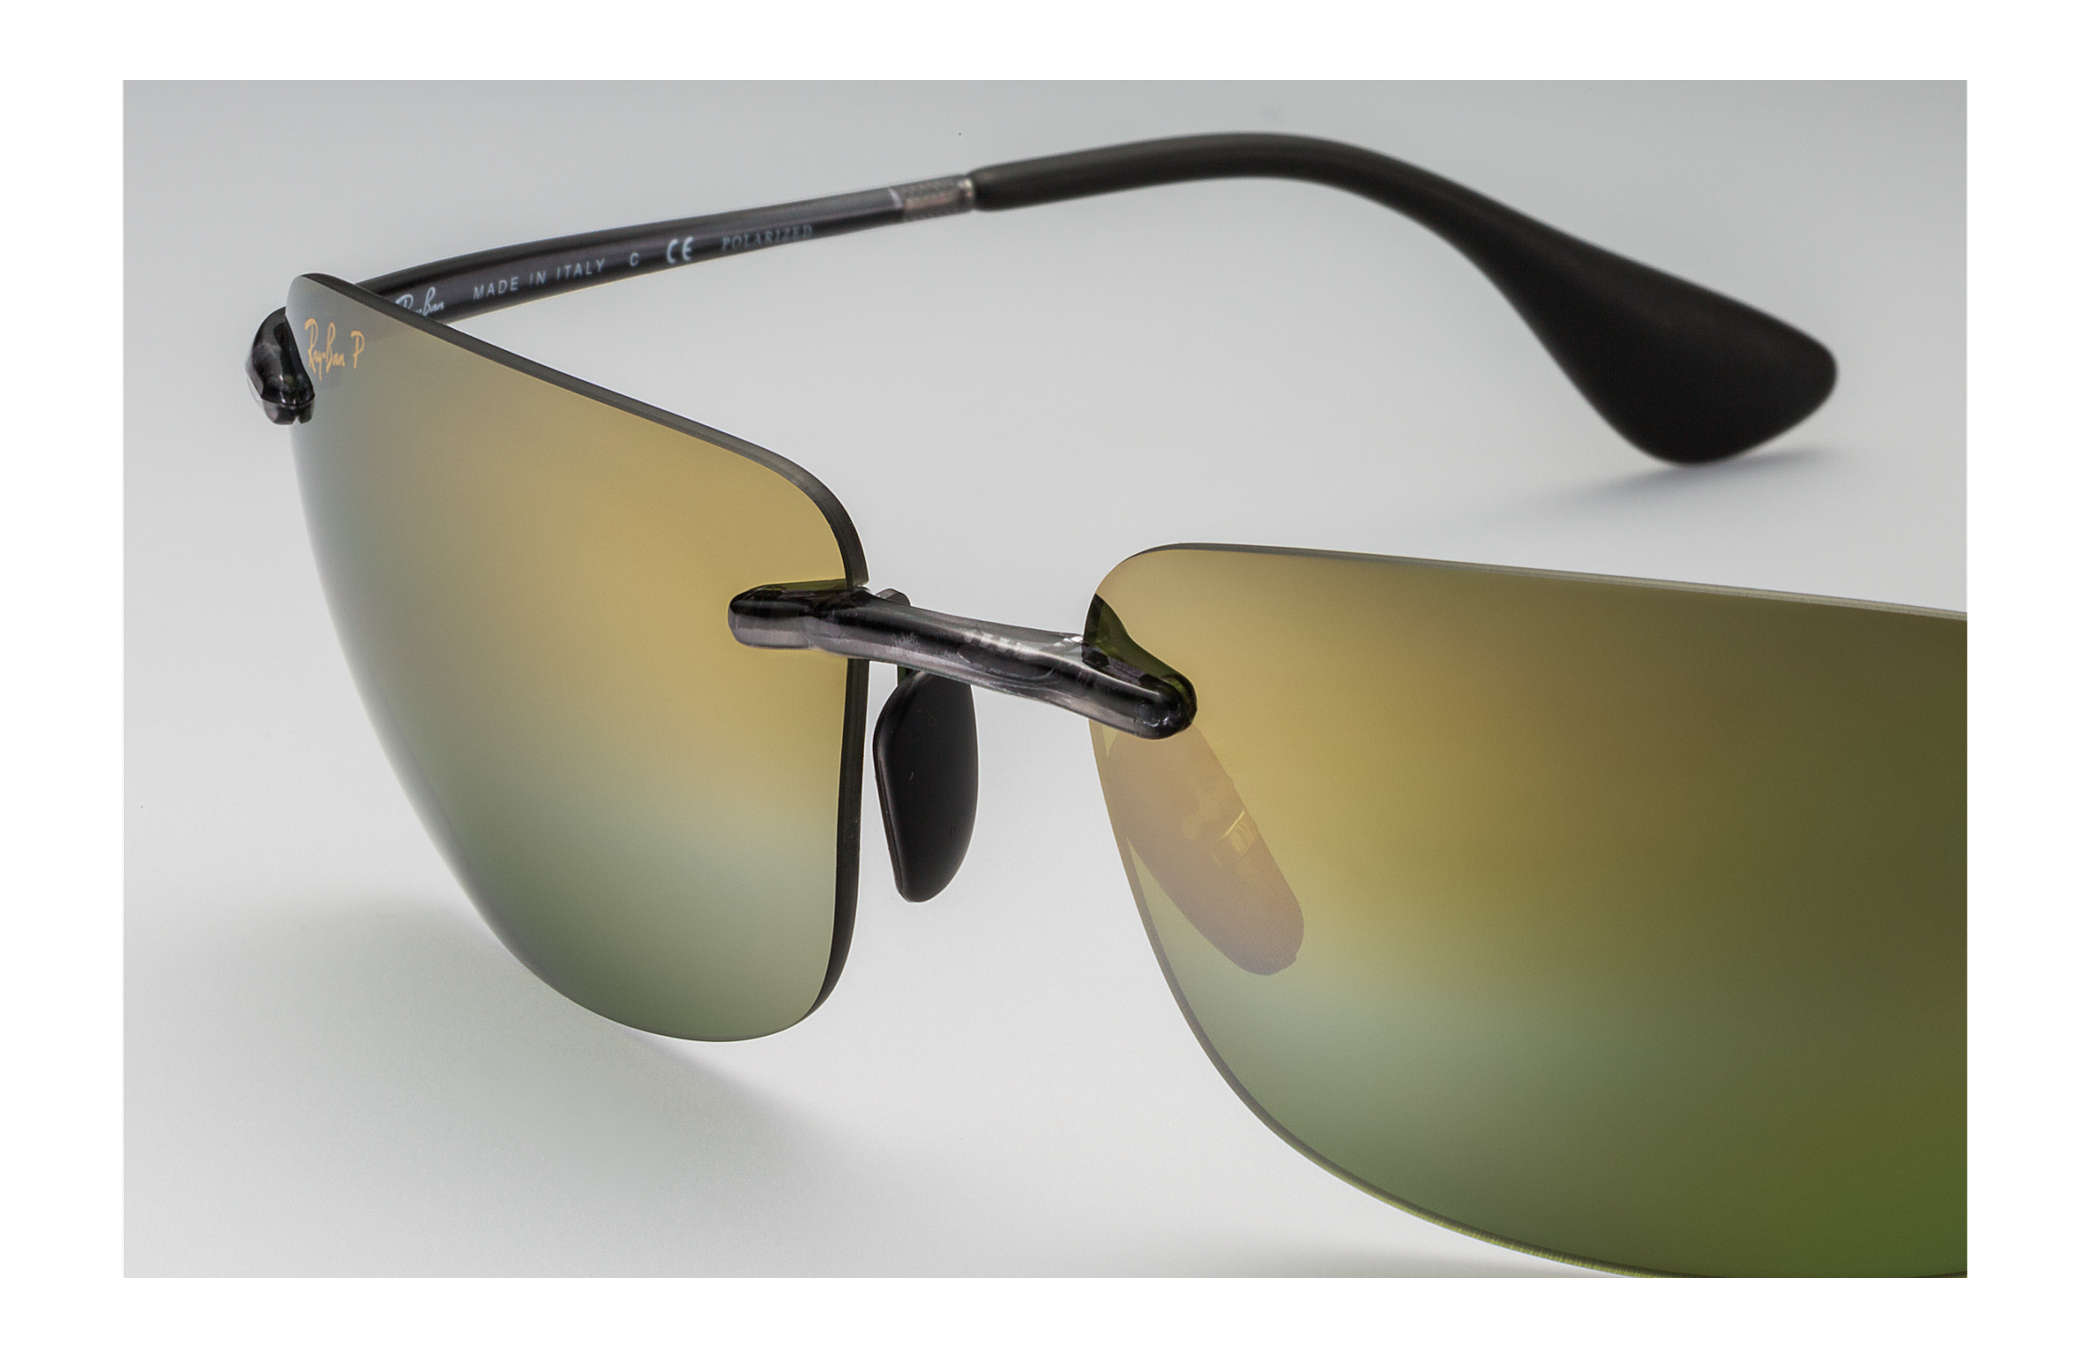 0ddba3d591 Ray-Ban Rb4255 Chromance RB4255 Grey - Injected - Green Polarized ...